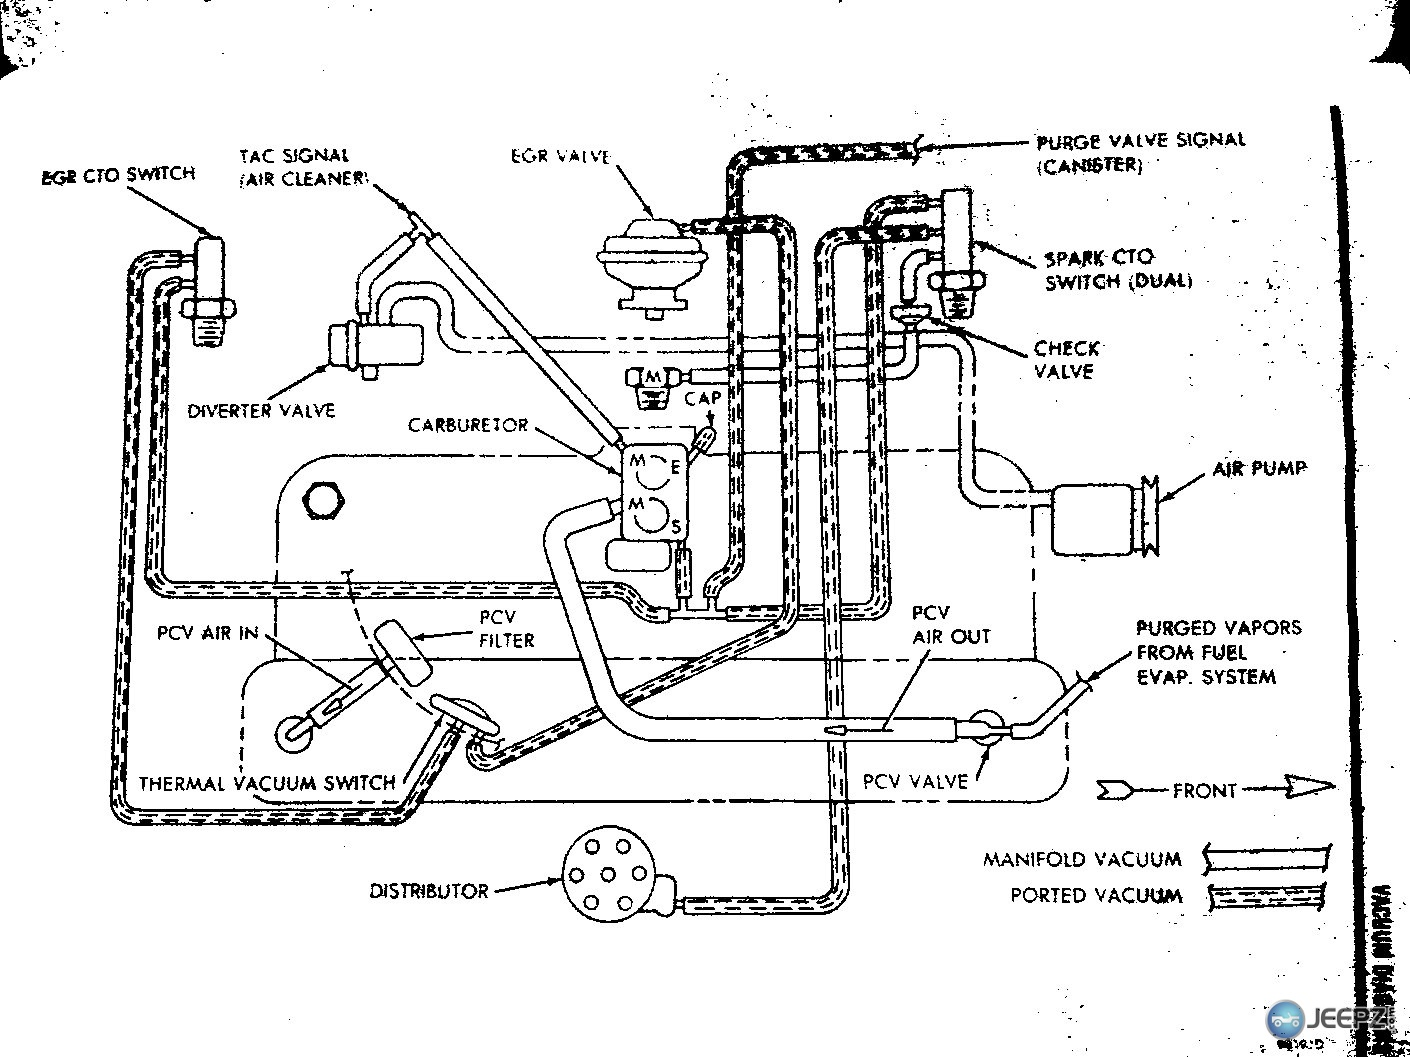 hight resolution of 2001 jeep tj vacuum system diagram simple wiring schema 99 jeep wrangler wiring diagram 2001 jeep tj vacuum system diagram